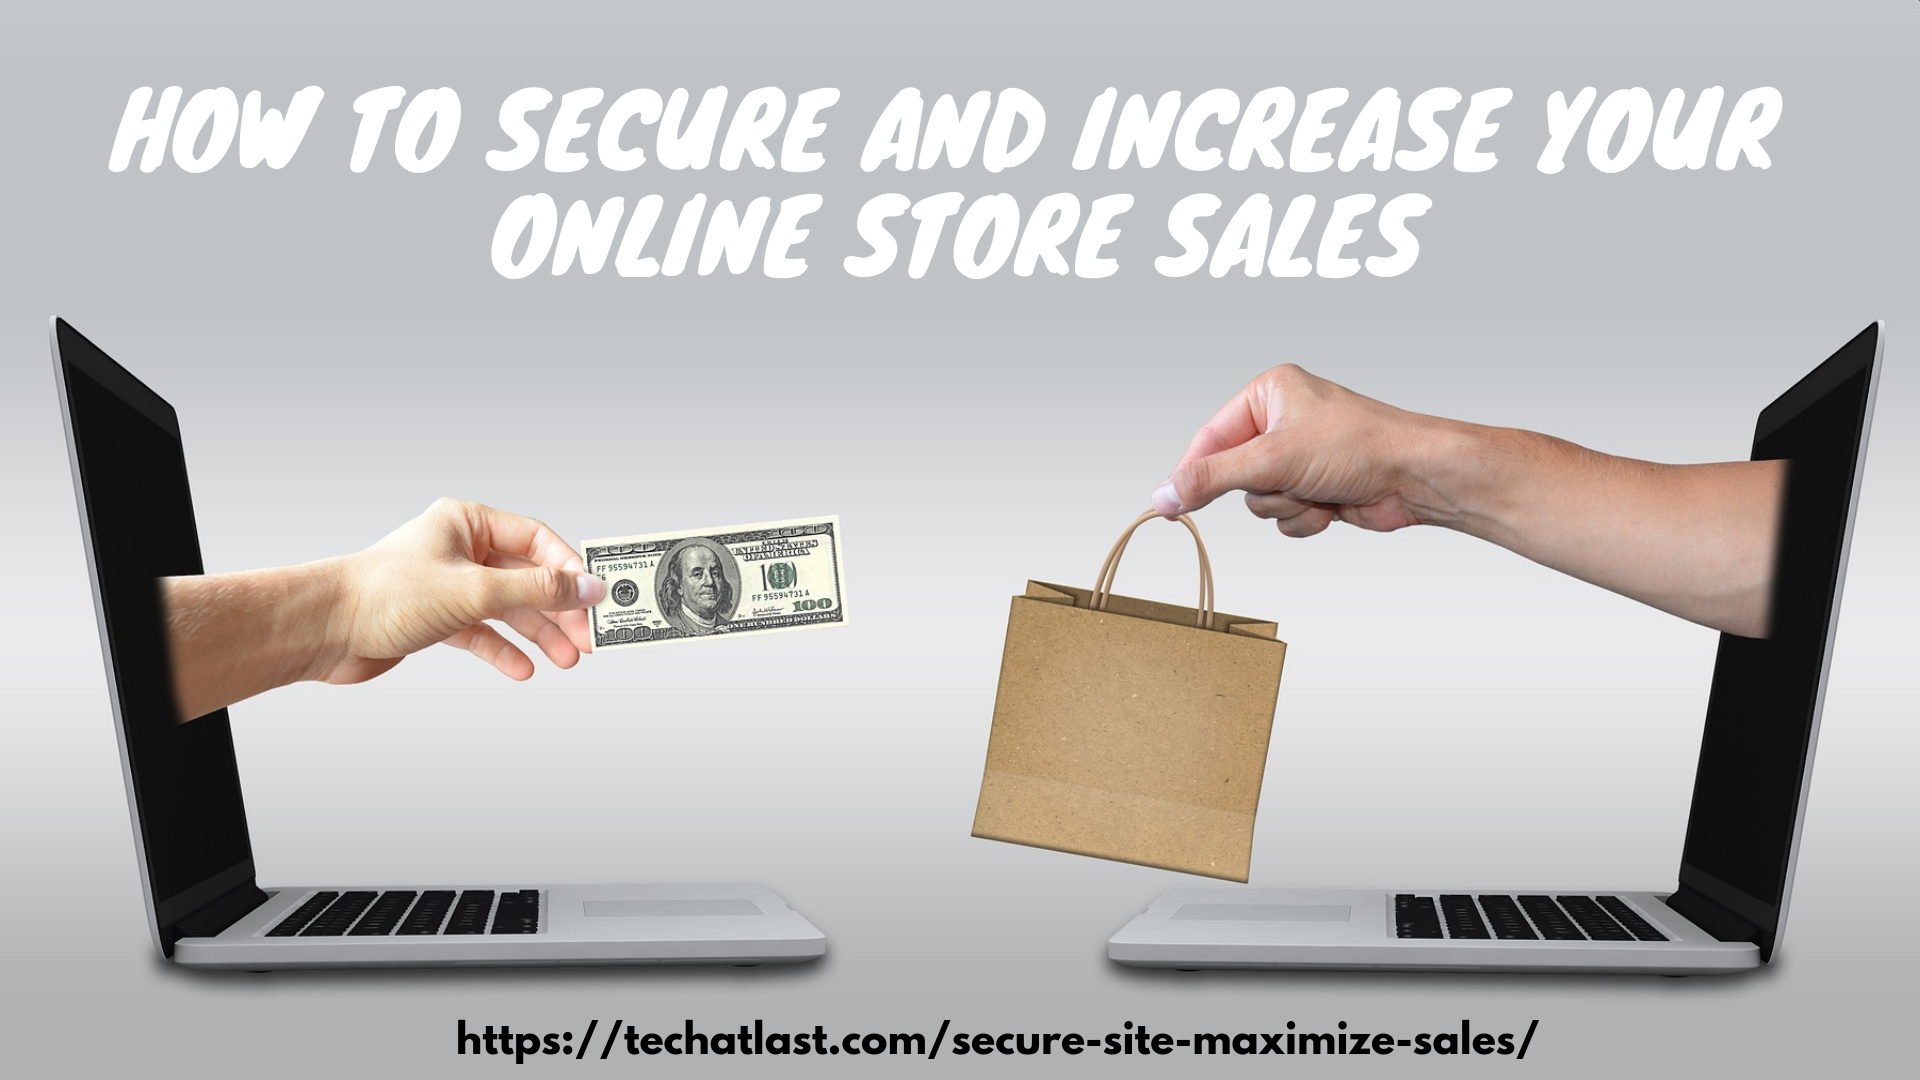 Maximize Sales: How to Secure and Increase Your Online Store Sales.